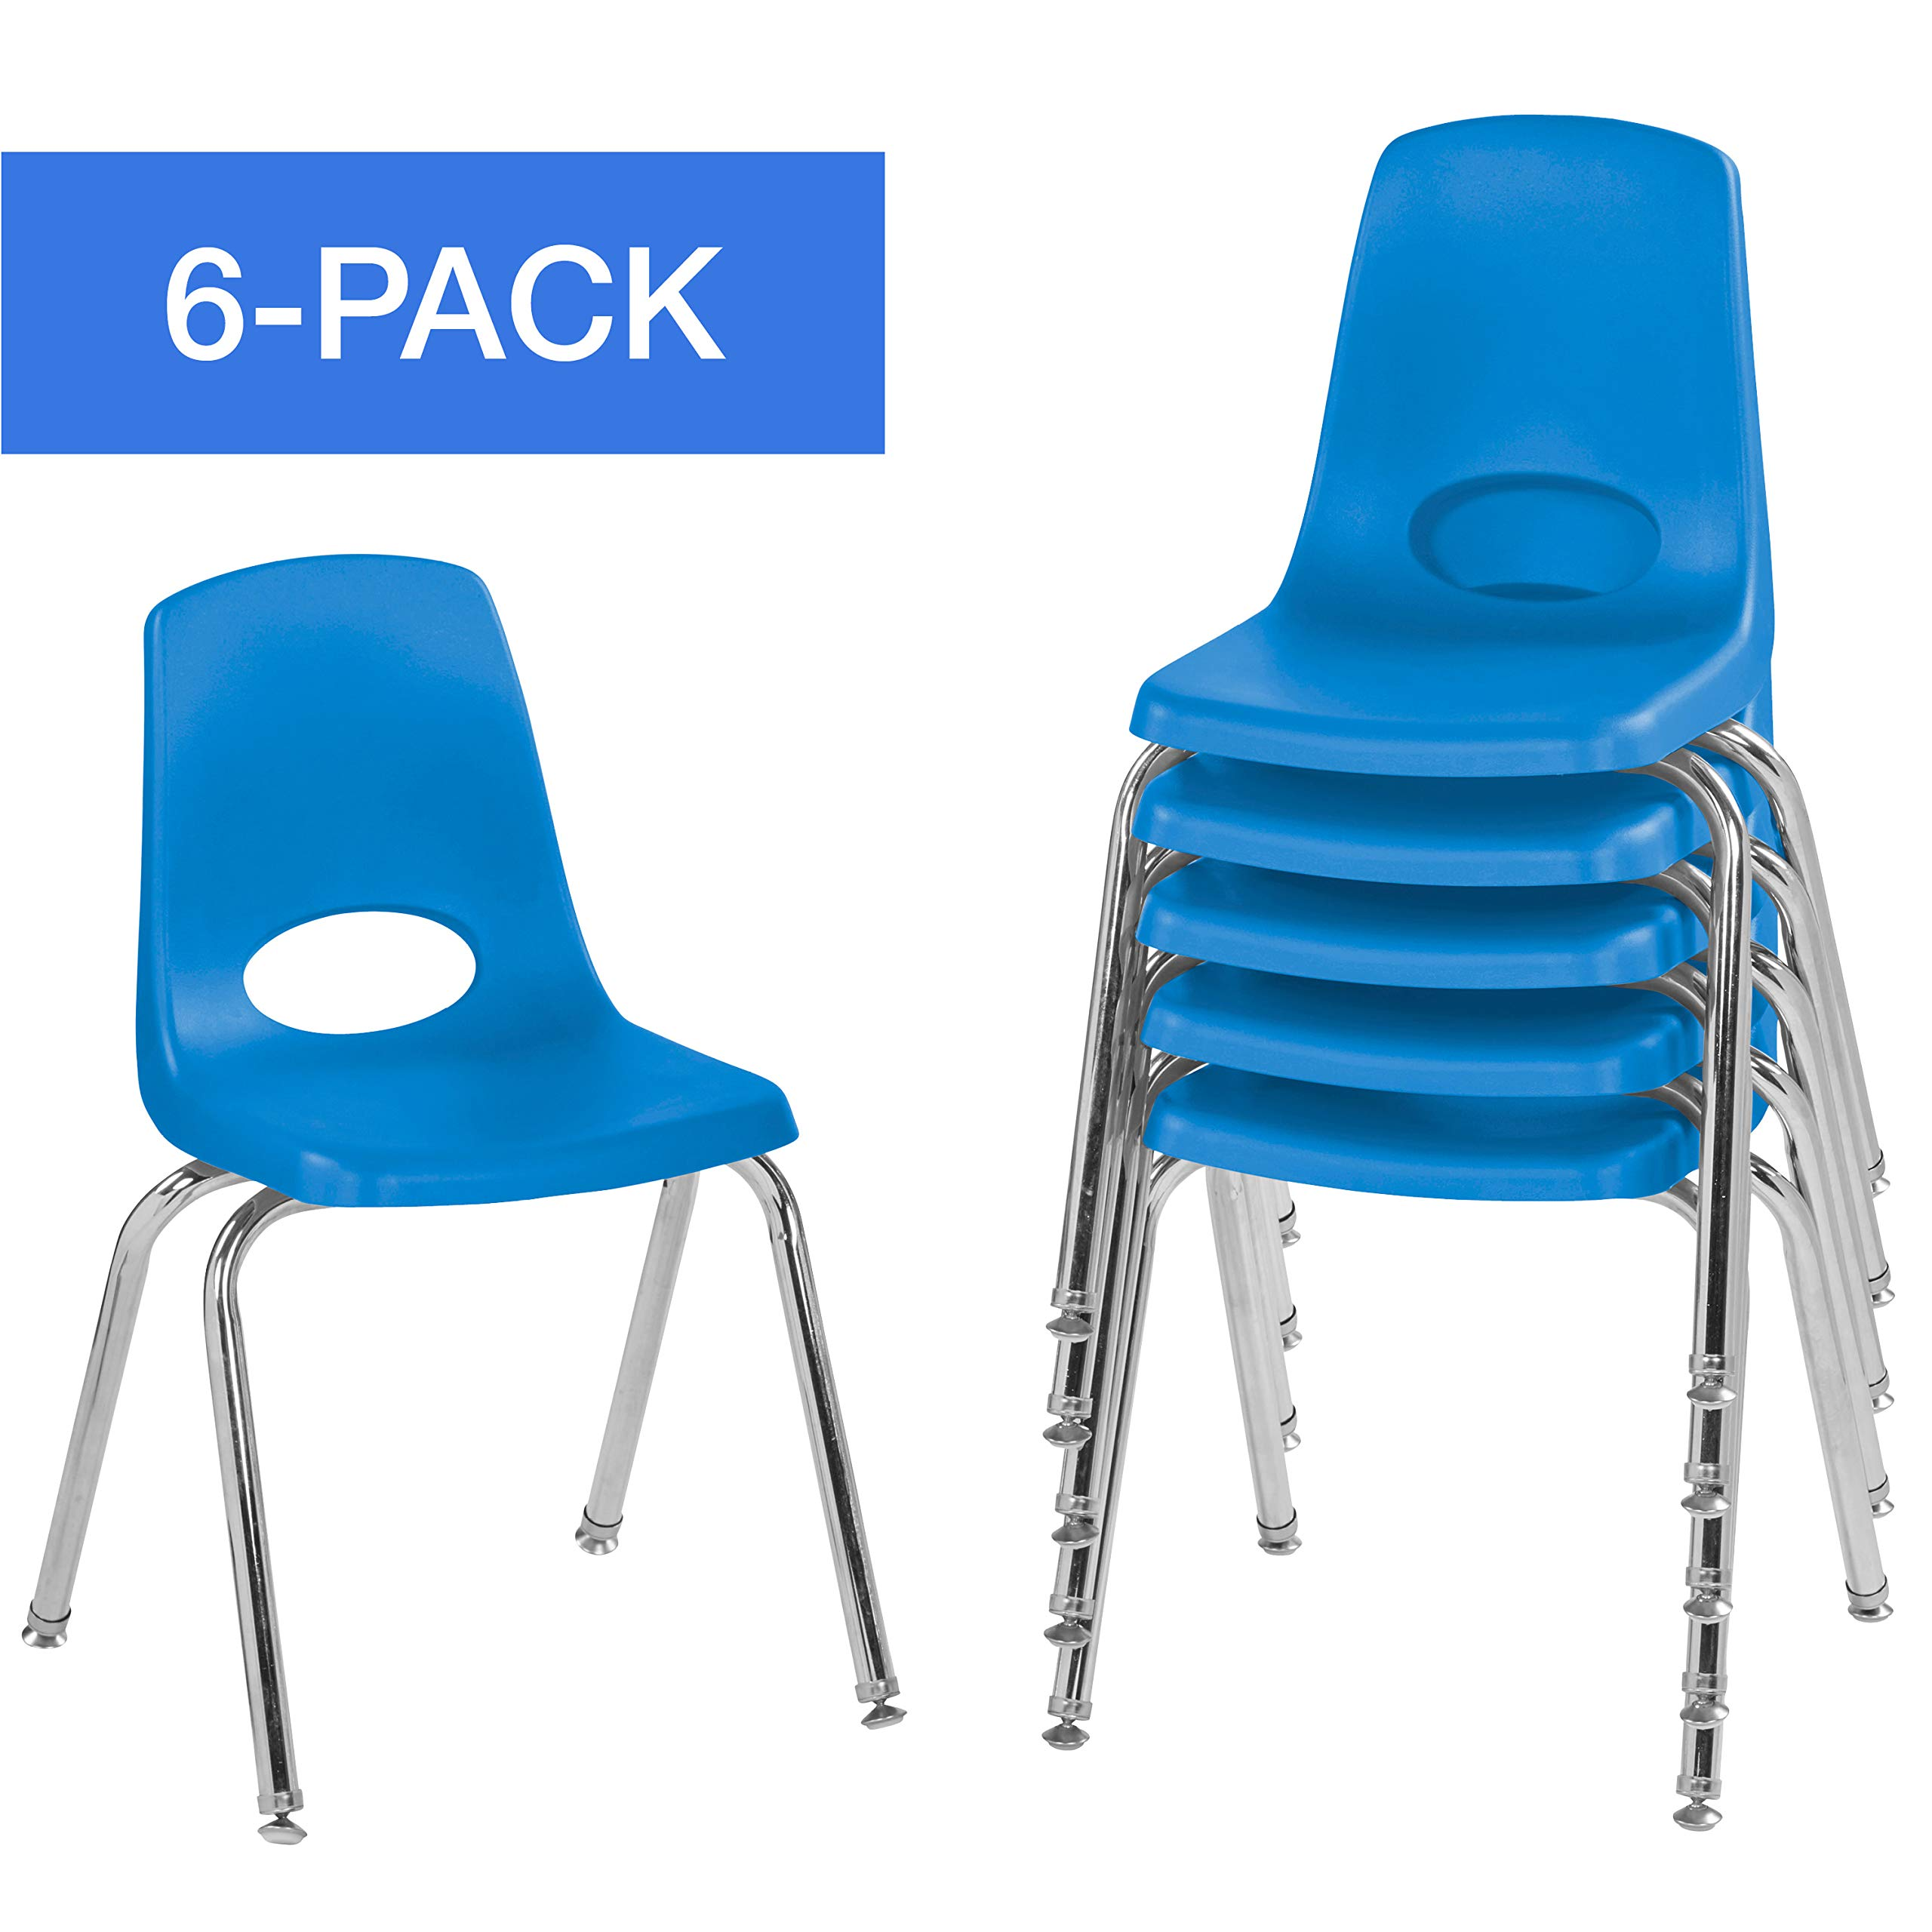 16'' School Stack Chair,Stacking Student Chairs with Chromed Steel Legs and Nylon Swivel Glides - Blue (6-Pack)